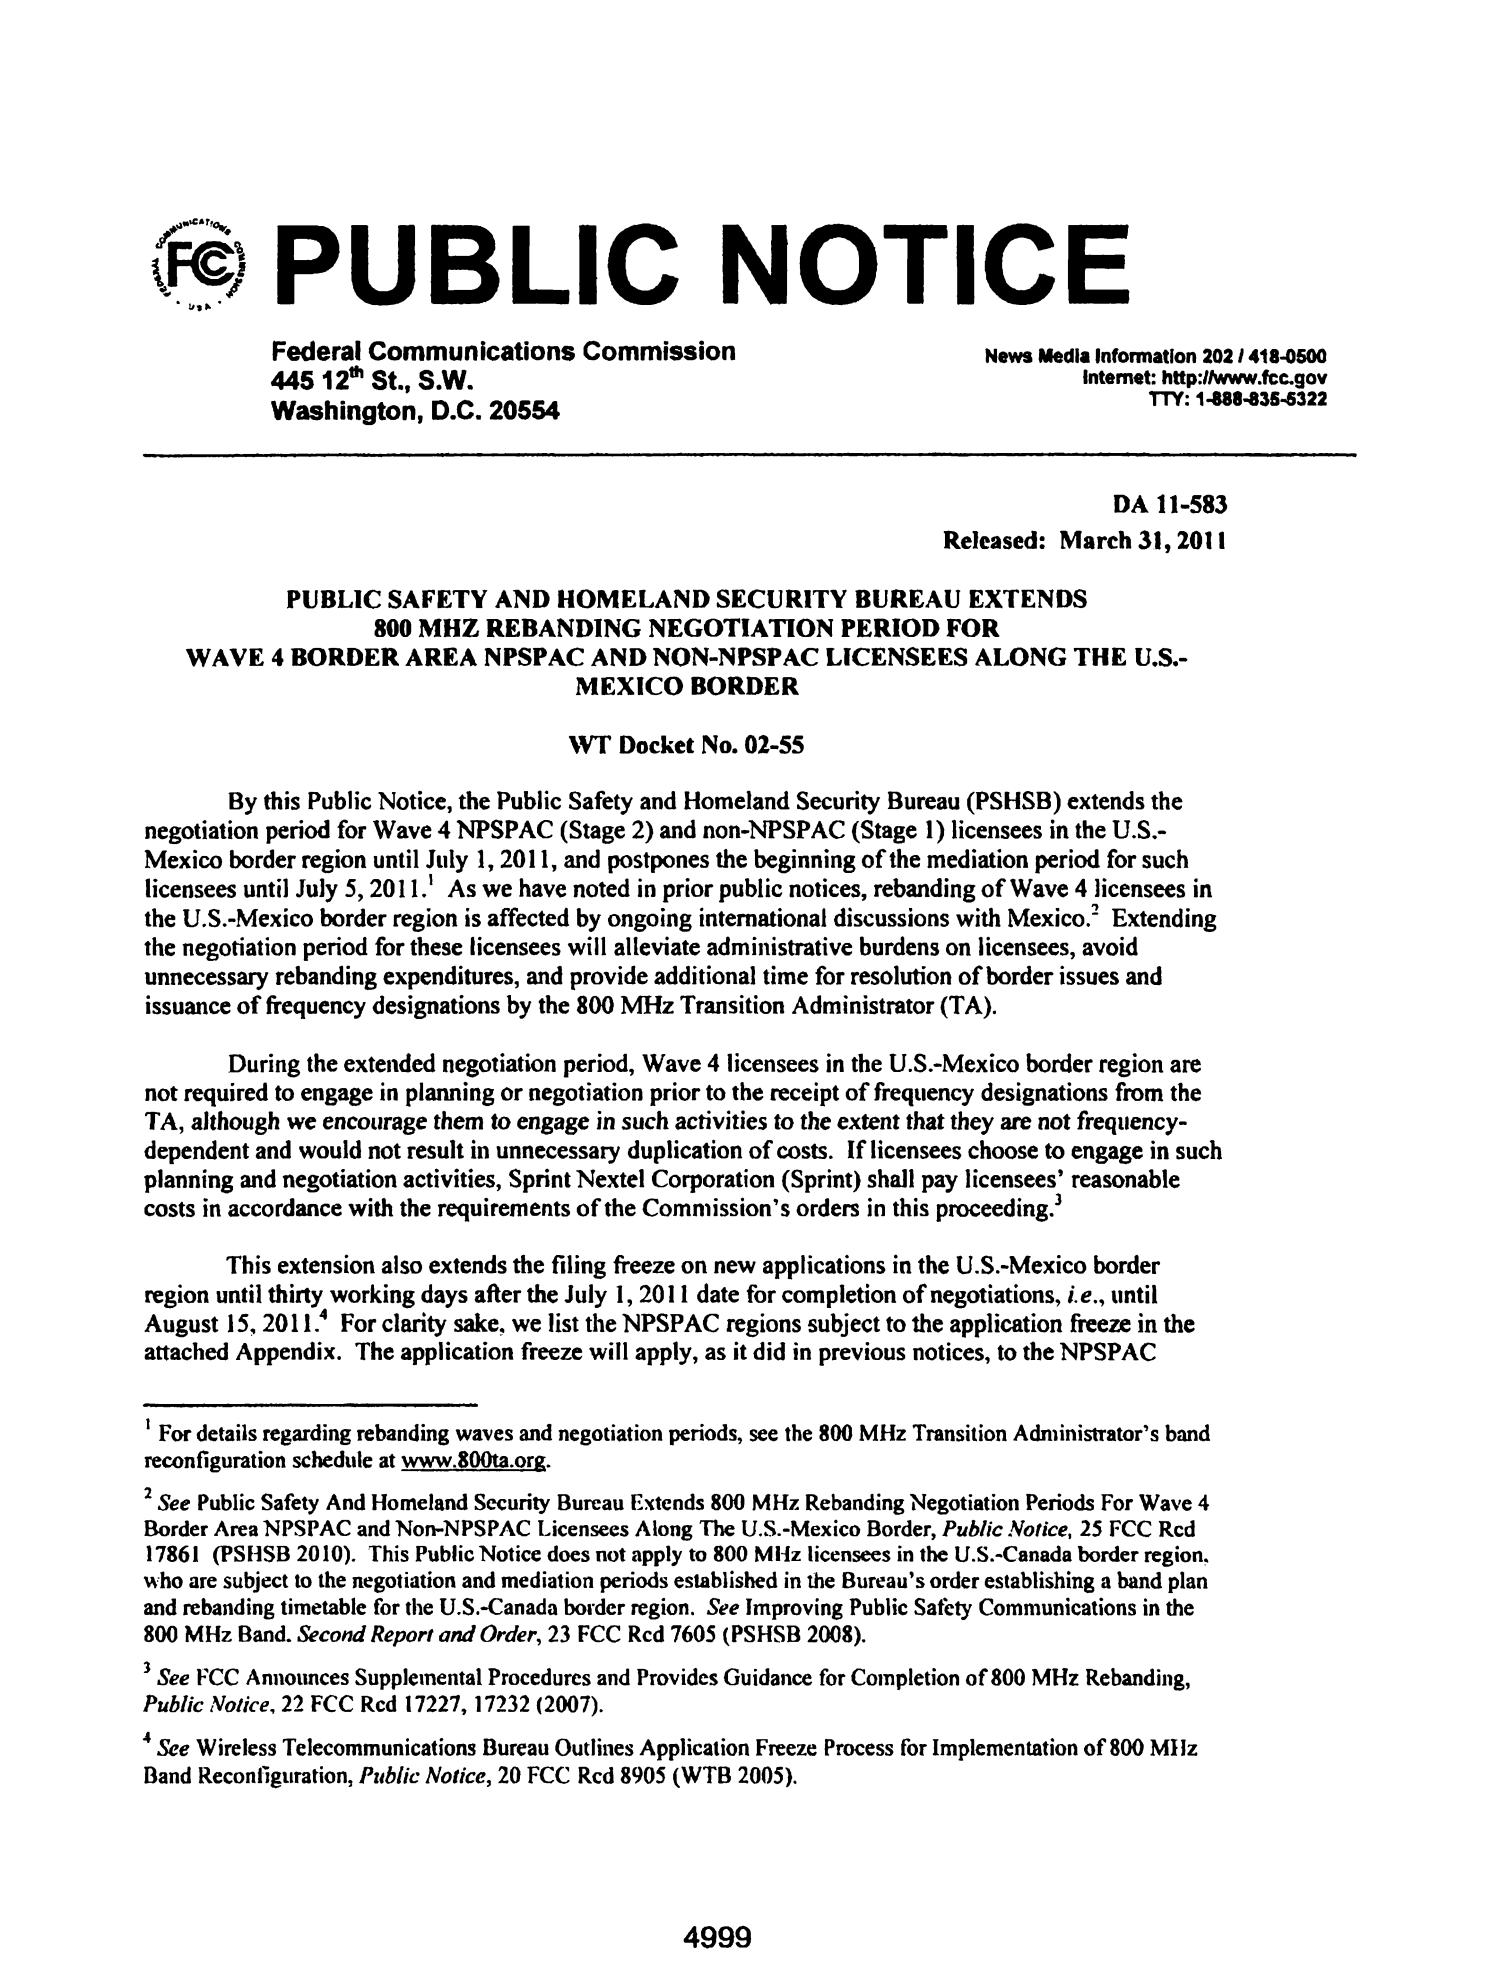 FCC Record, Volume 26, No. 7, Pages 4843 to 5761, March 28 - April 08, 2011                                                                                                      4999